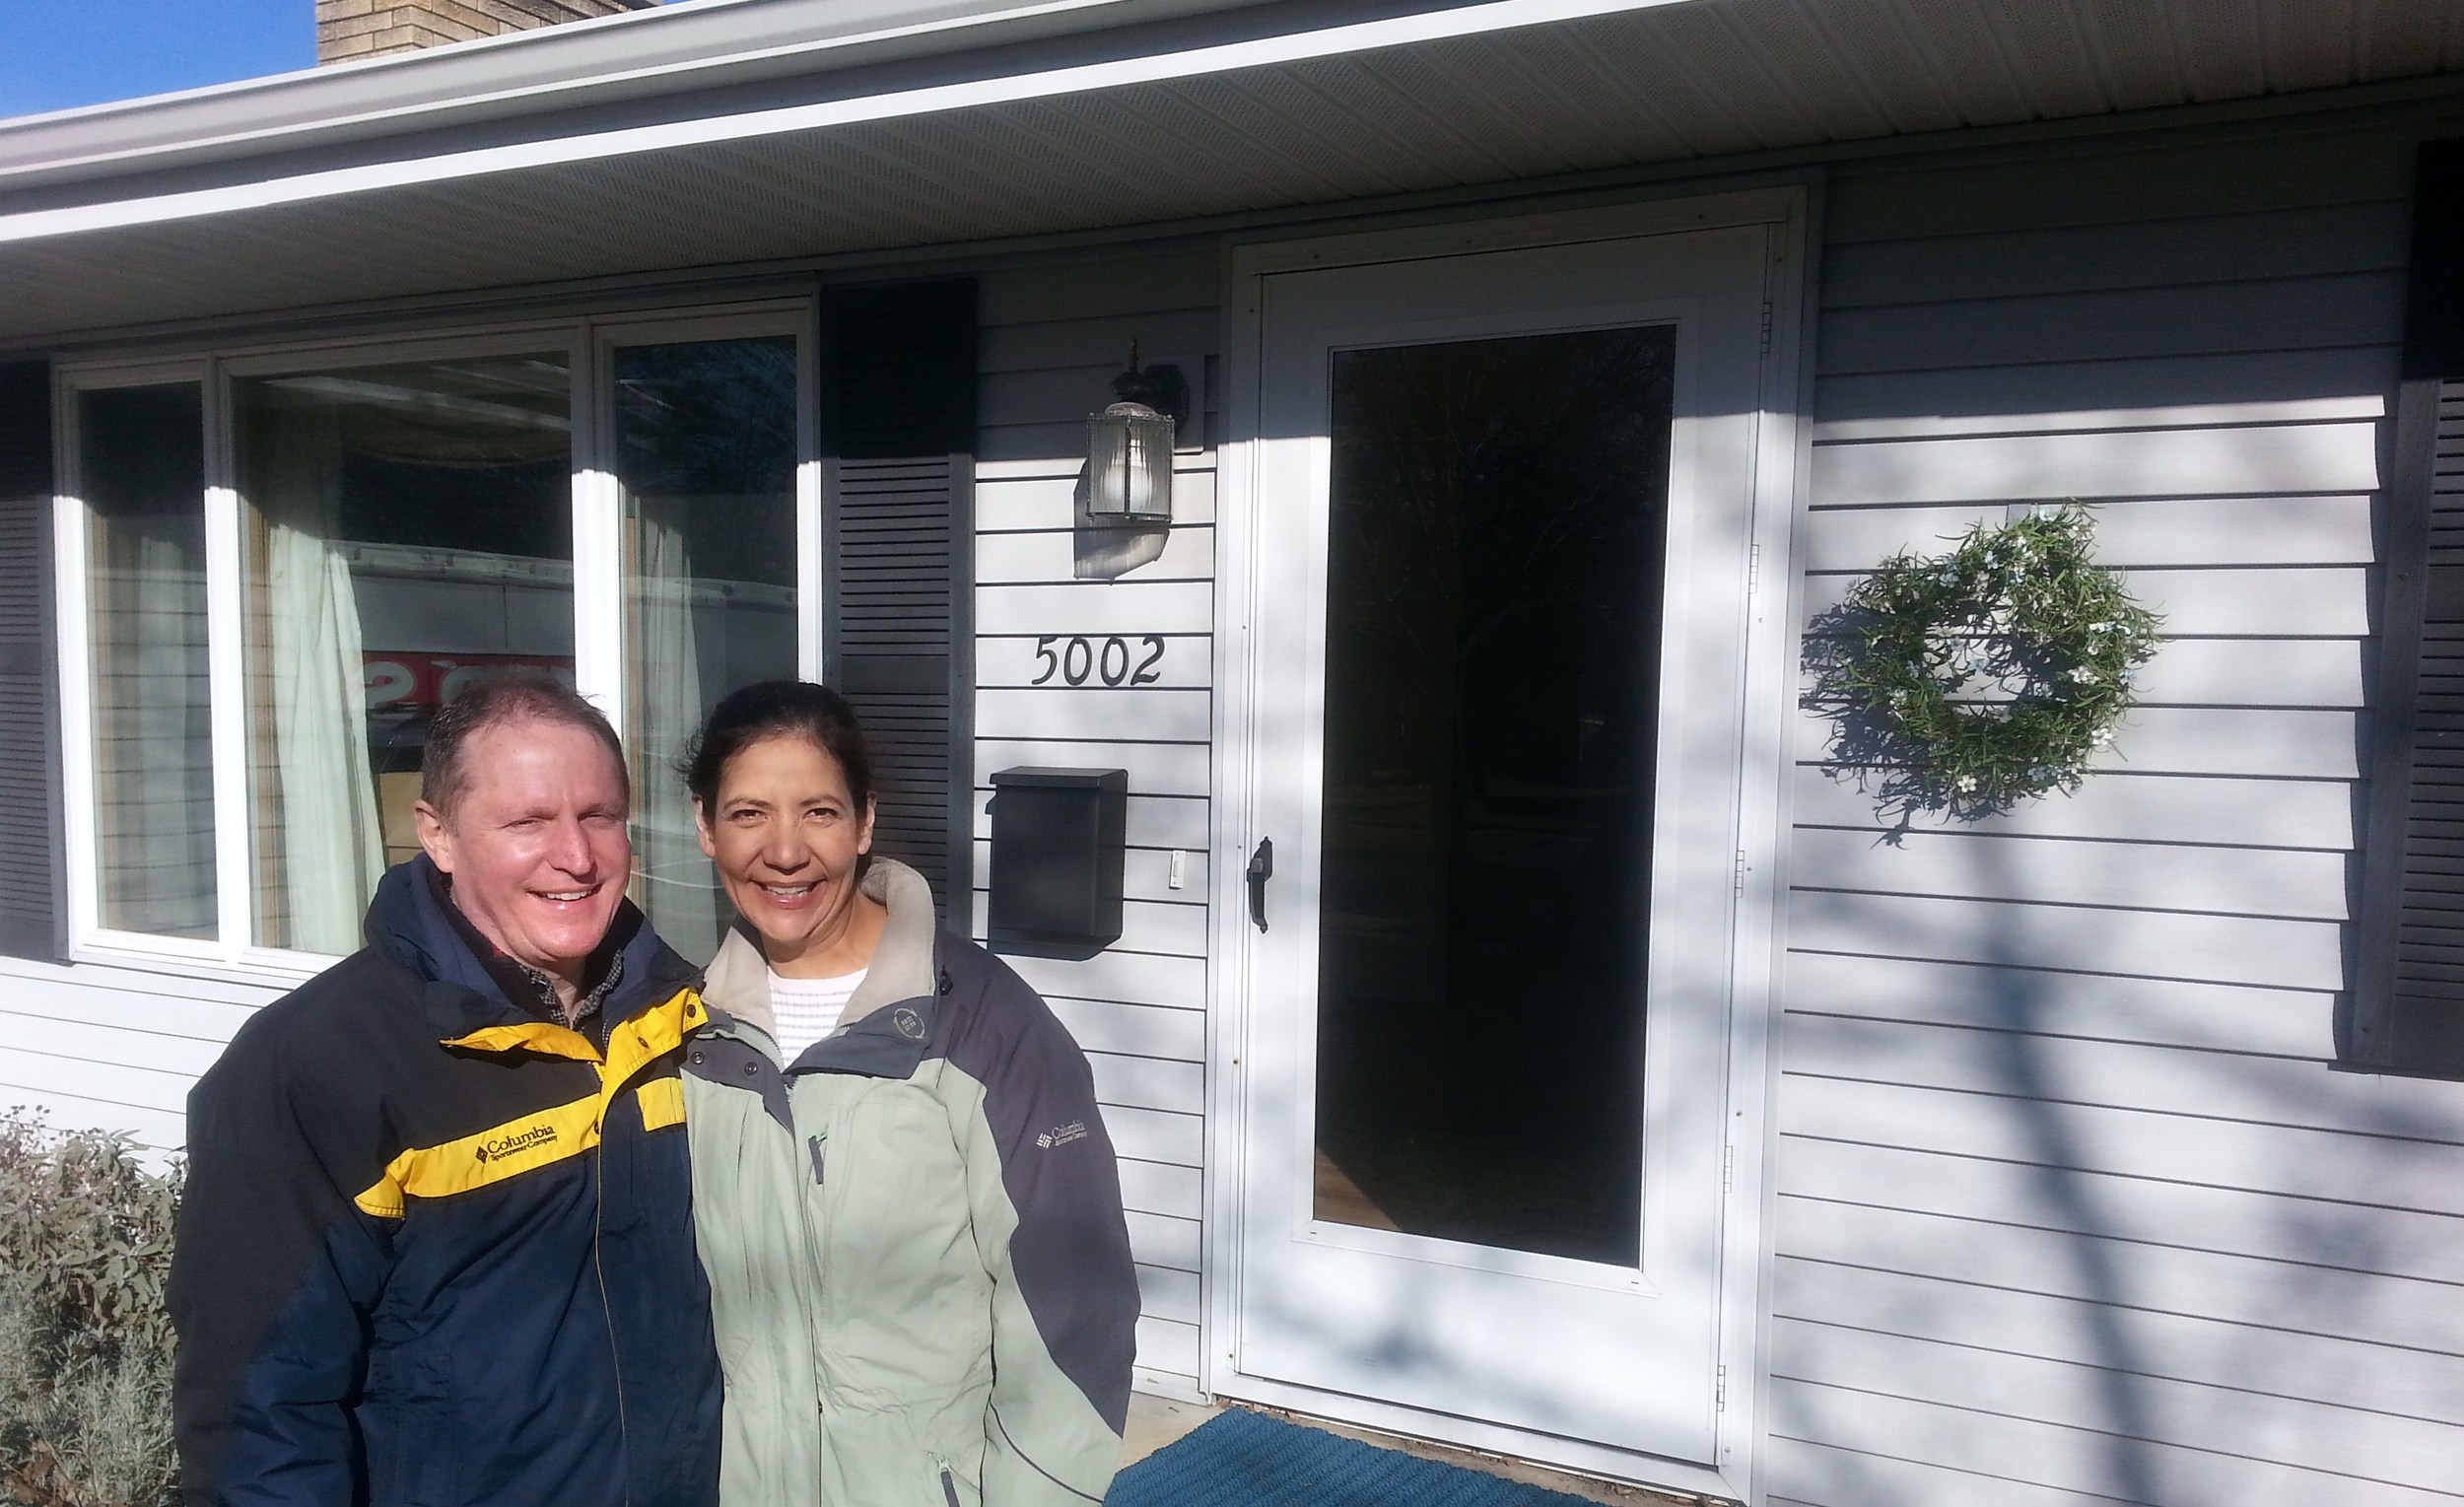 Bruce and Lisa Stein: happy homeowners, thanks to ROOST!